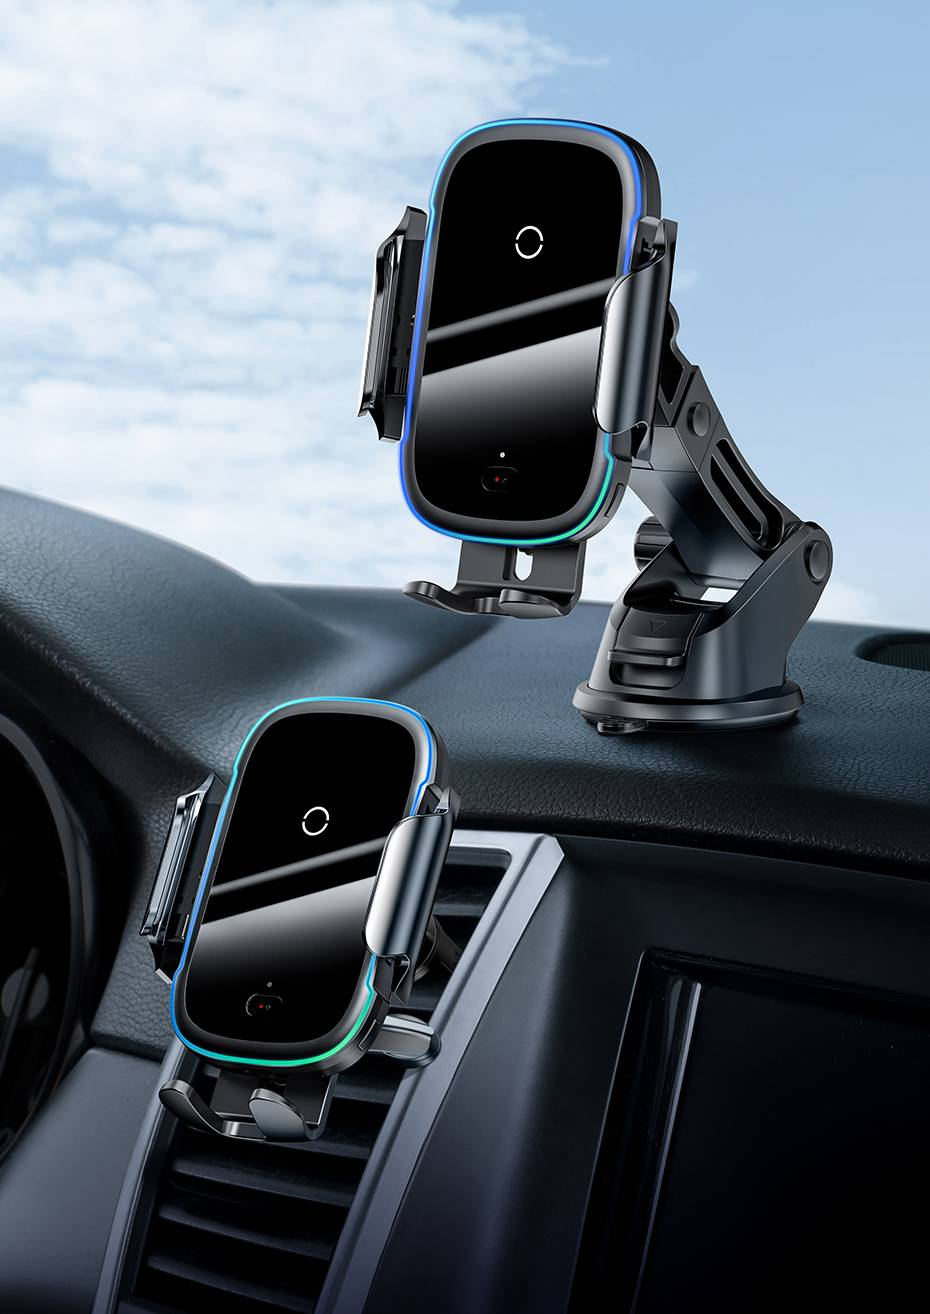 15 W Wireless Car Charger with Suction Mount